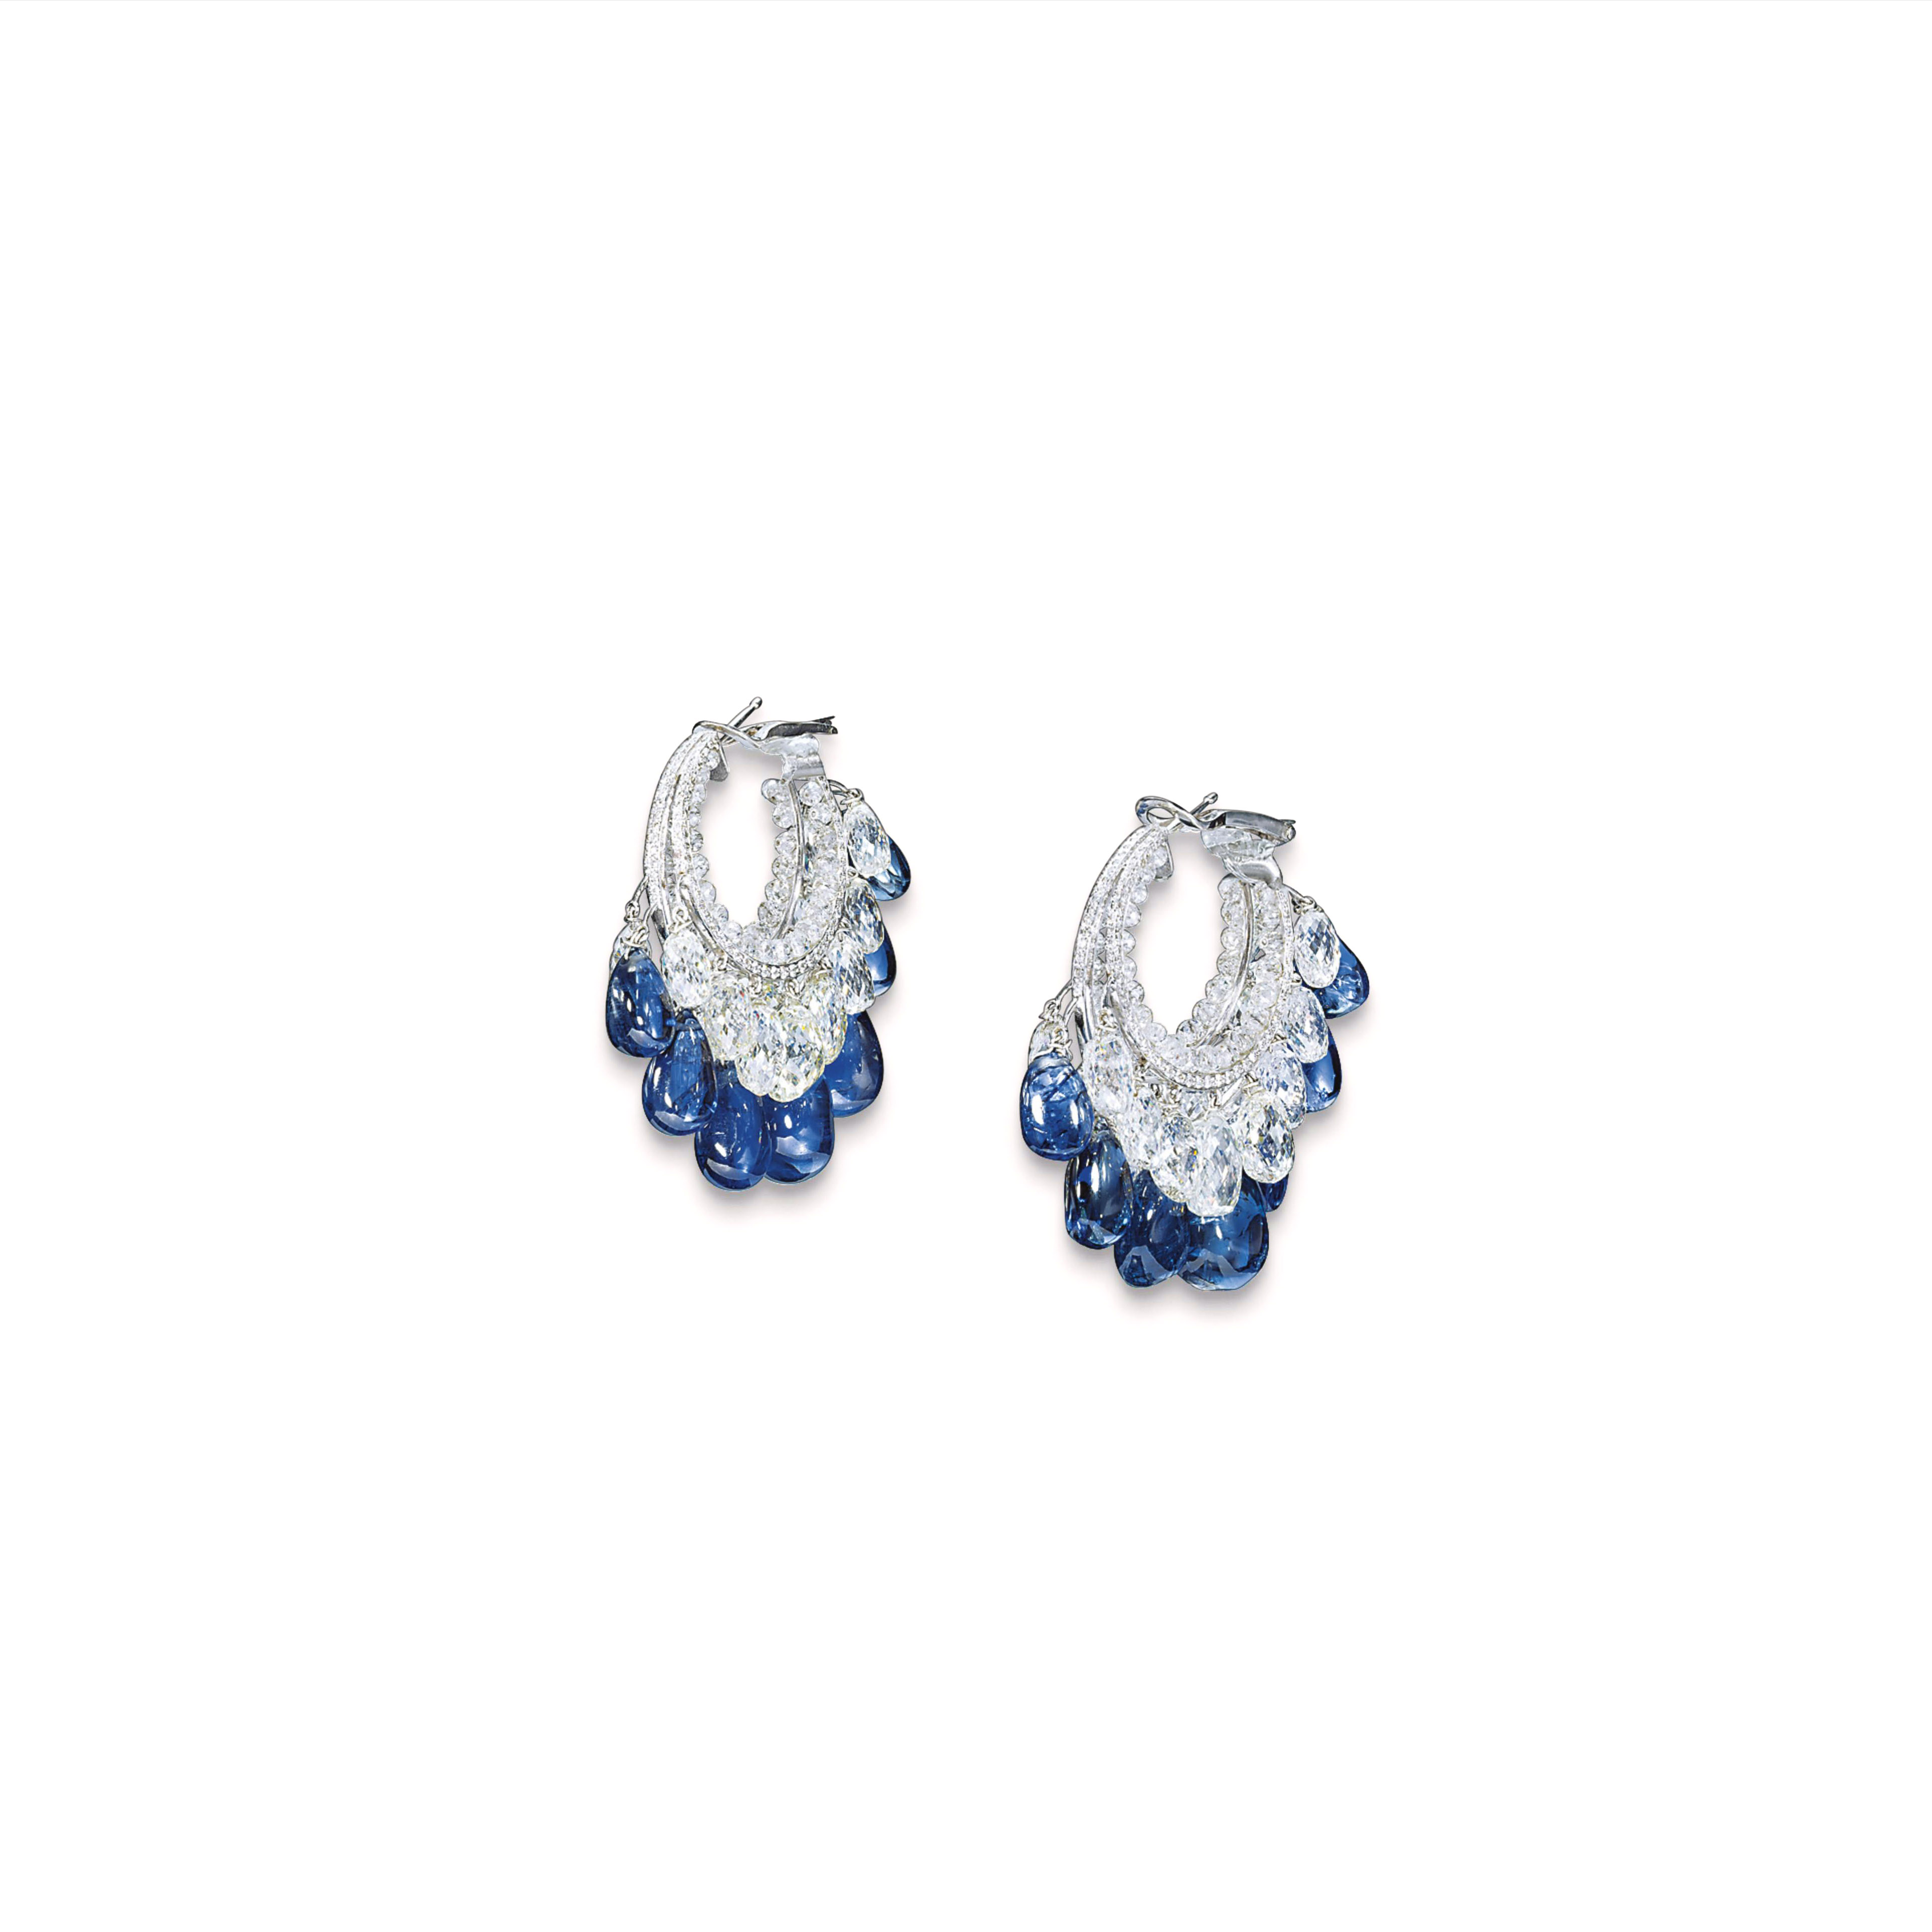 A PAIR OF SAPPHIRE AND DIAMOND EARRINGS, BY BHAGAT